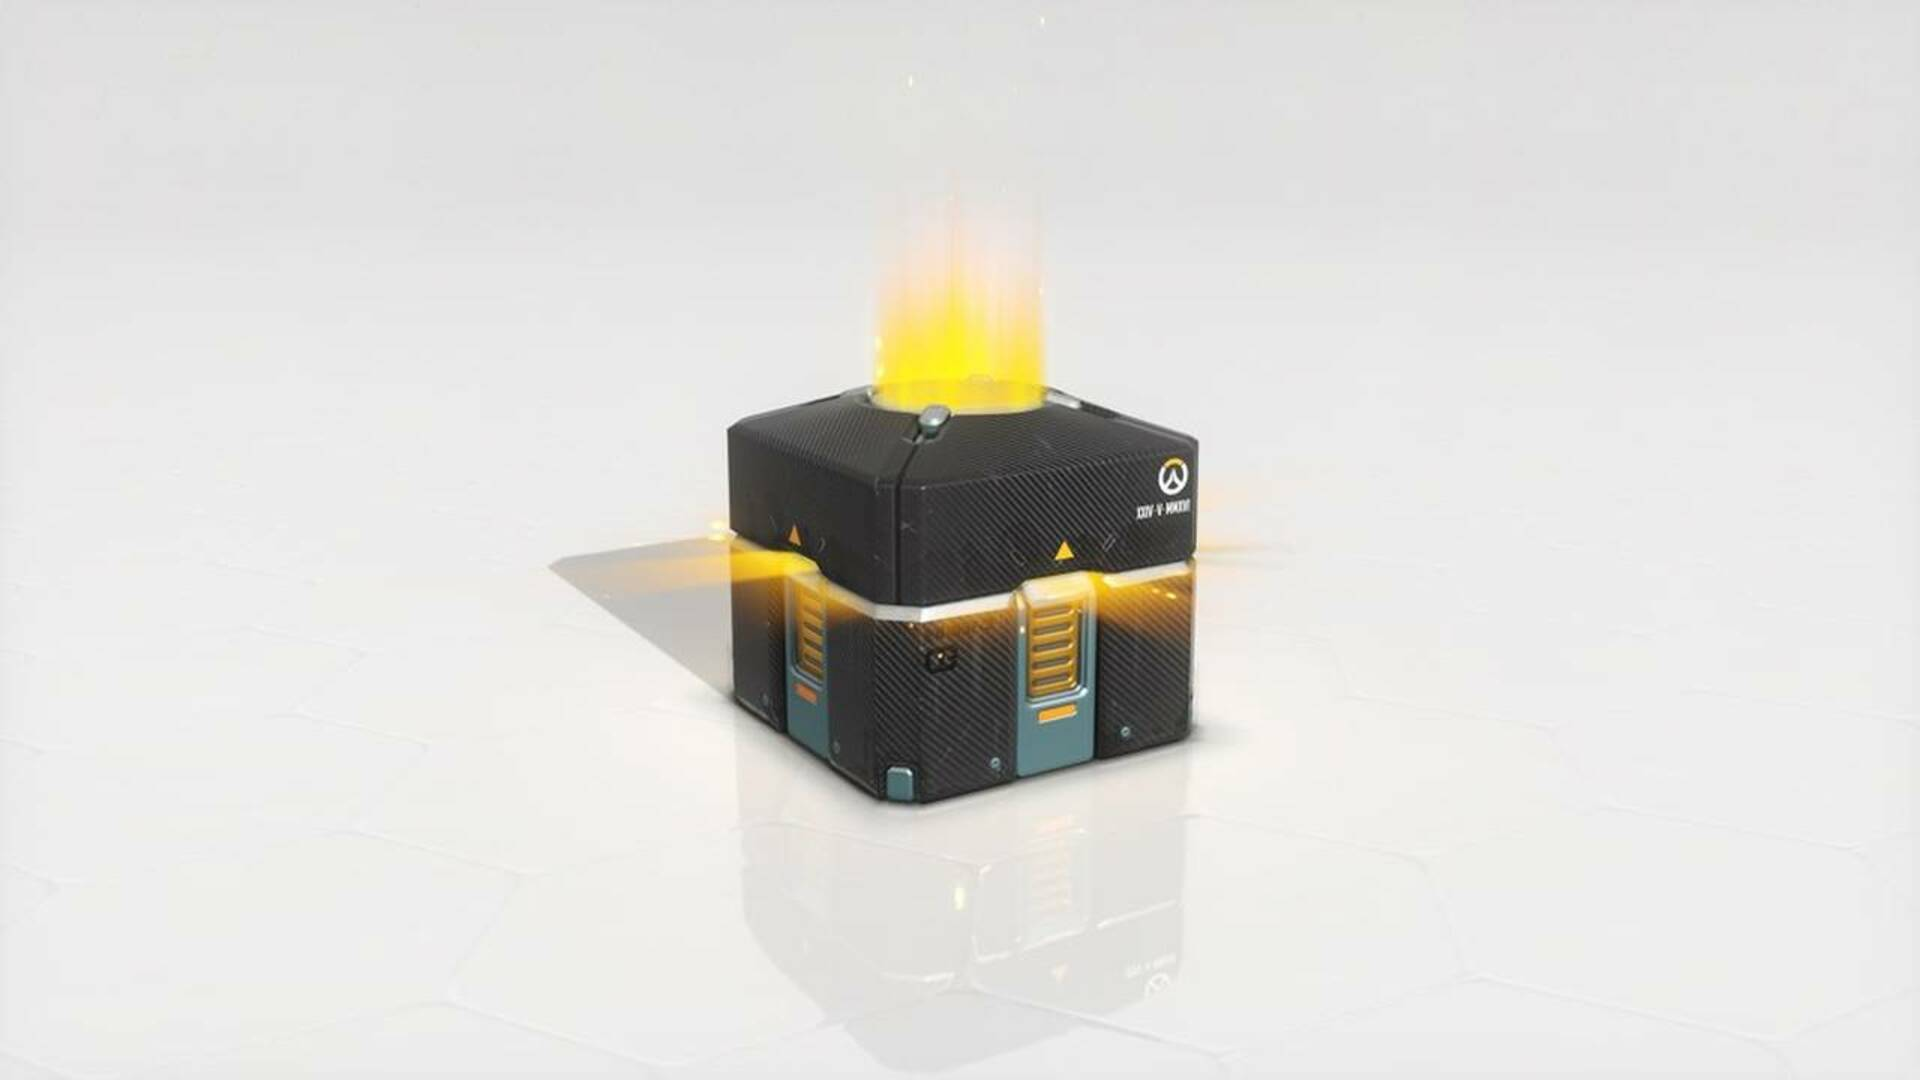 """EA Defends Loot Boxes as """"Quite Ethical and Quite Fun"""" Amid Questioning by U.K. Parliament"""